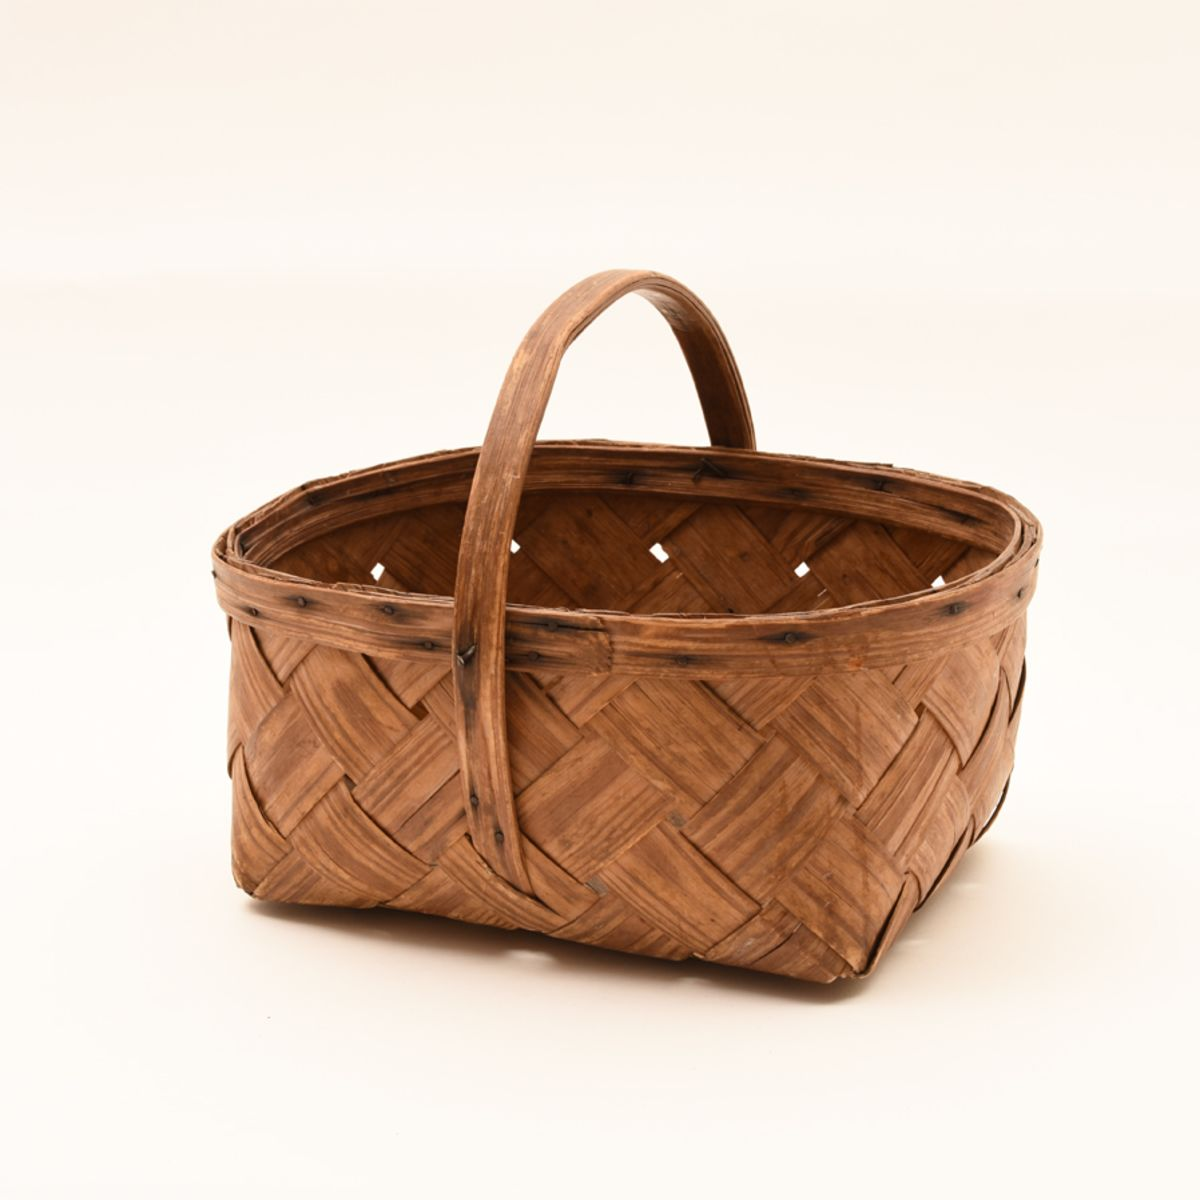 Folky-Basket-Woodslate